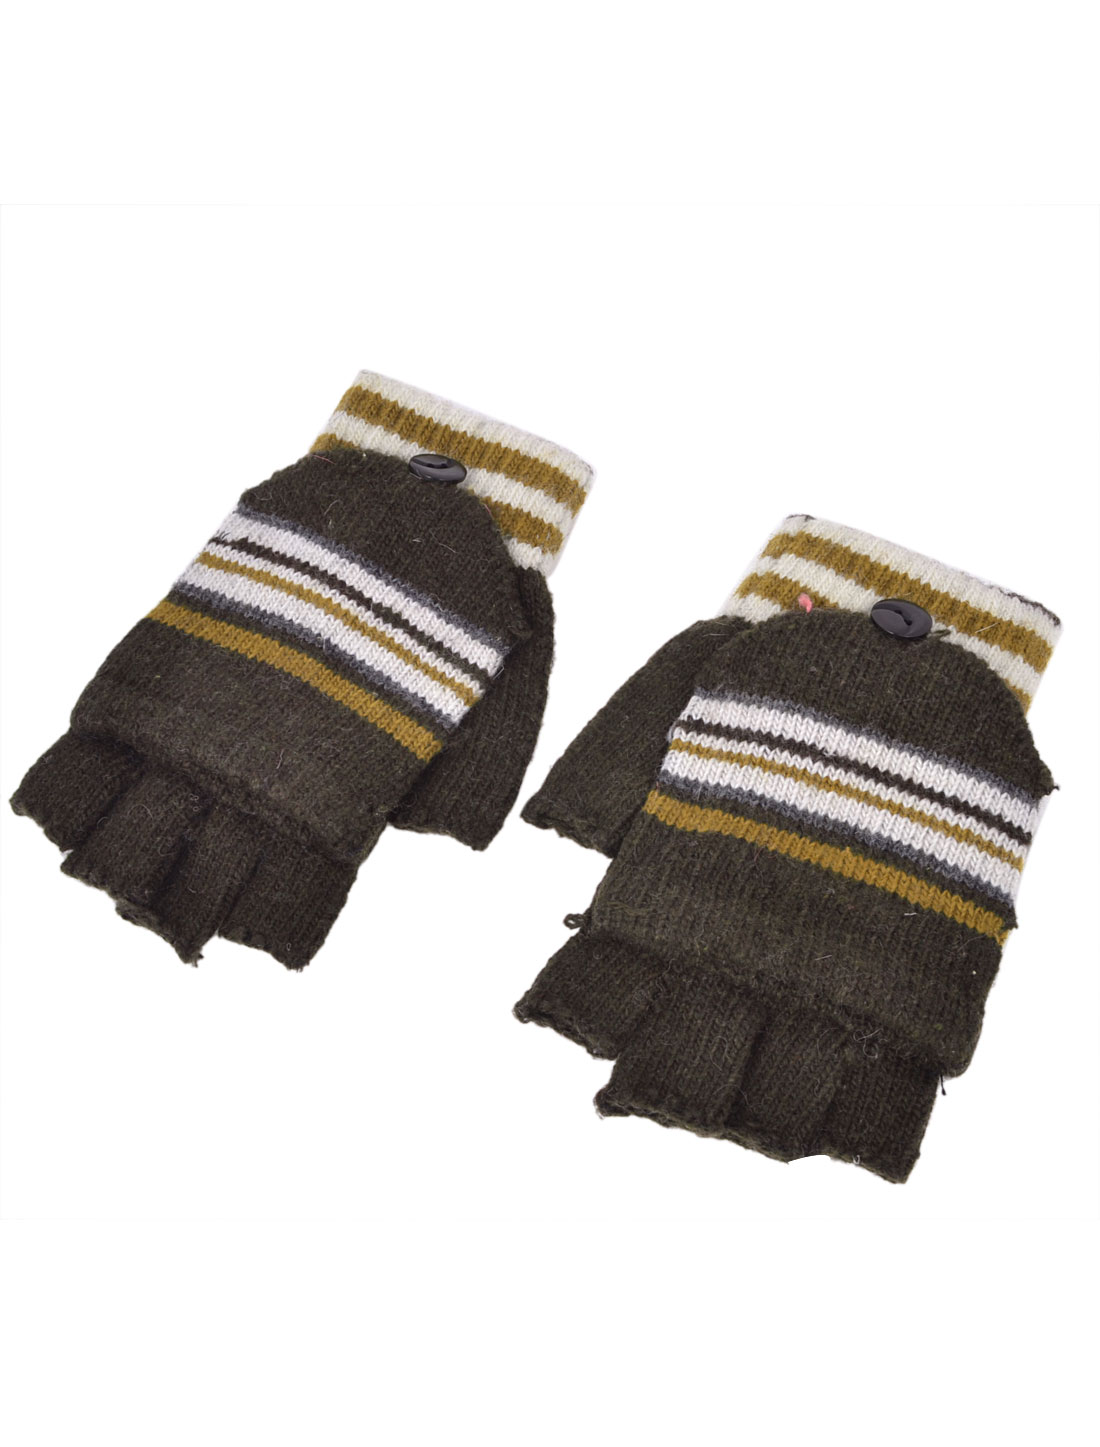 Unisex Striped Flap Cover Knitting Warm Half Fingers Gloves Brown Pair